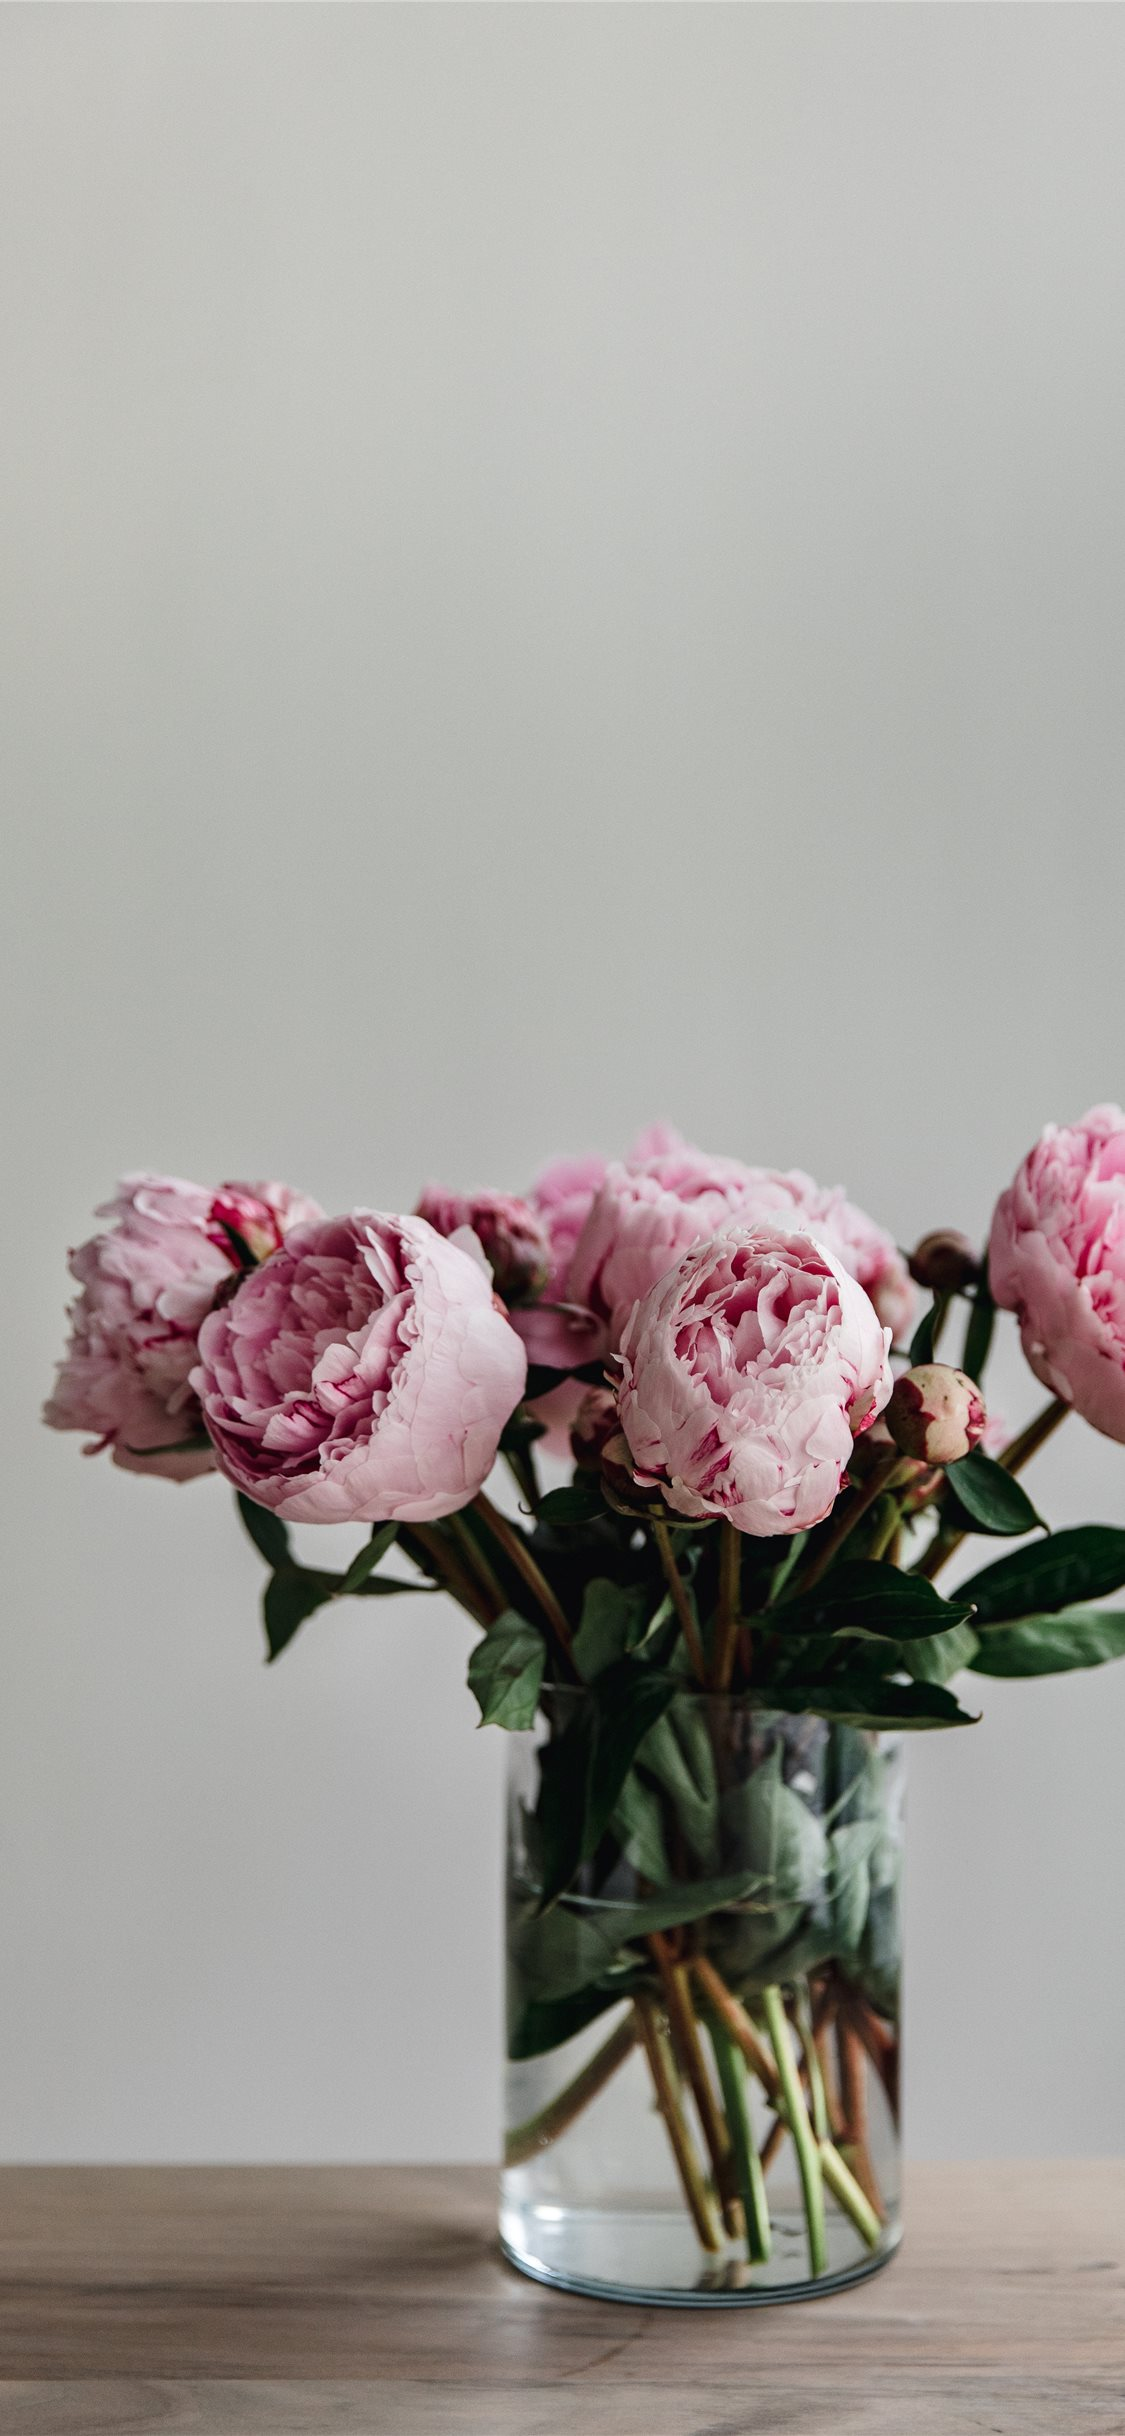 This Simple Image Of A Bunch Of Peonies In A Vase Iphone X Wallpapers Free Download